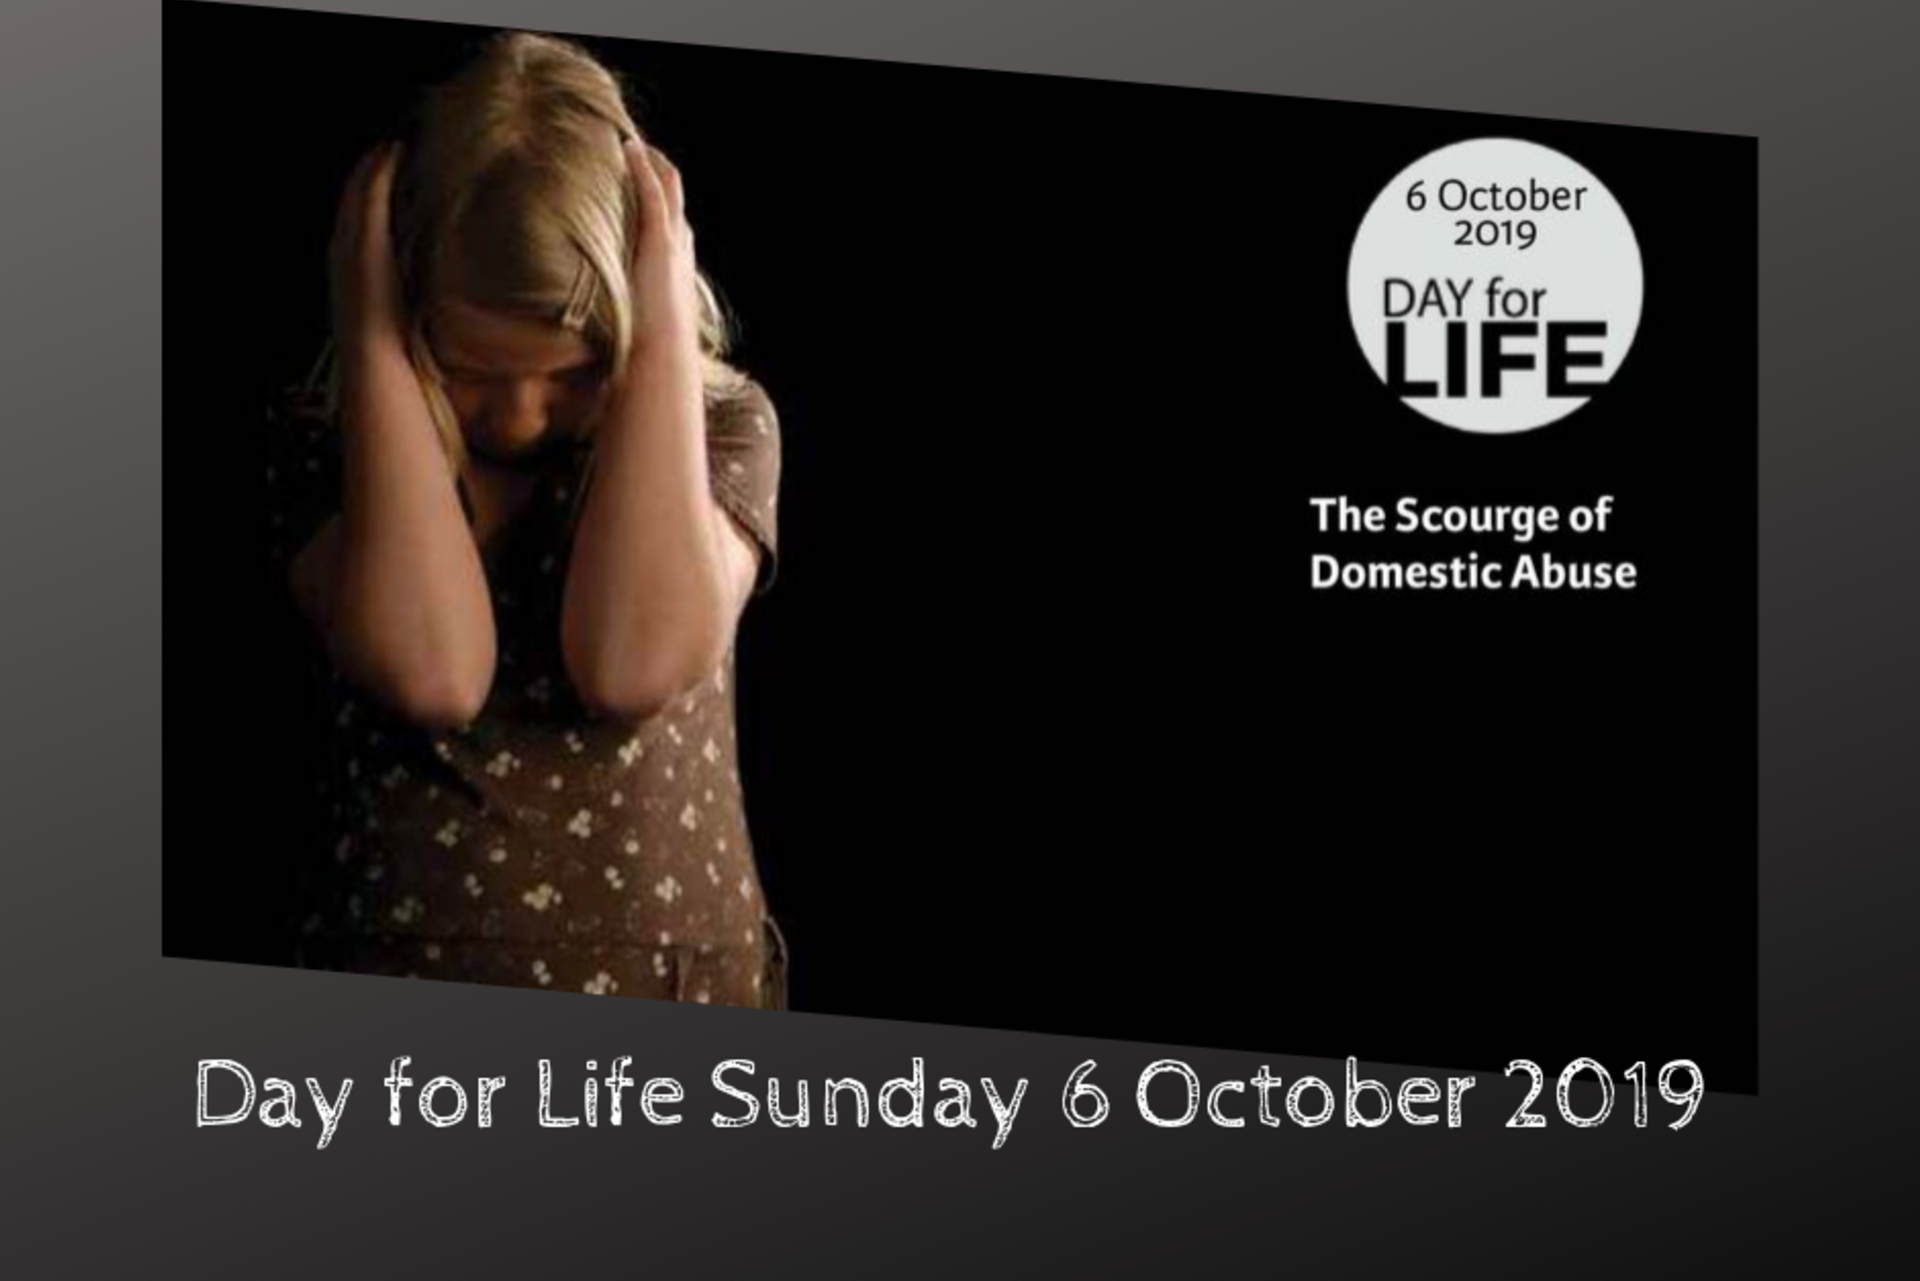 Day for Life 2019 – The Scourge of Domestic Abuse